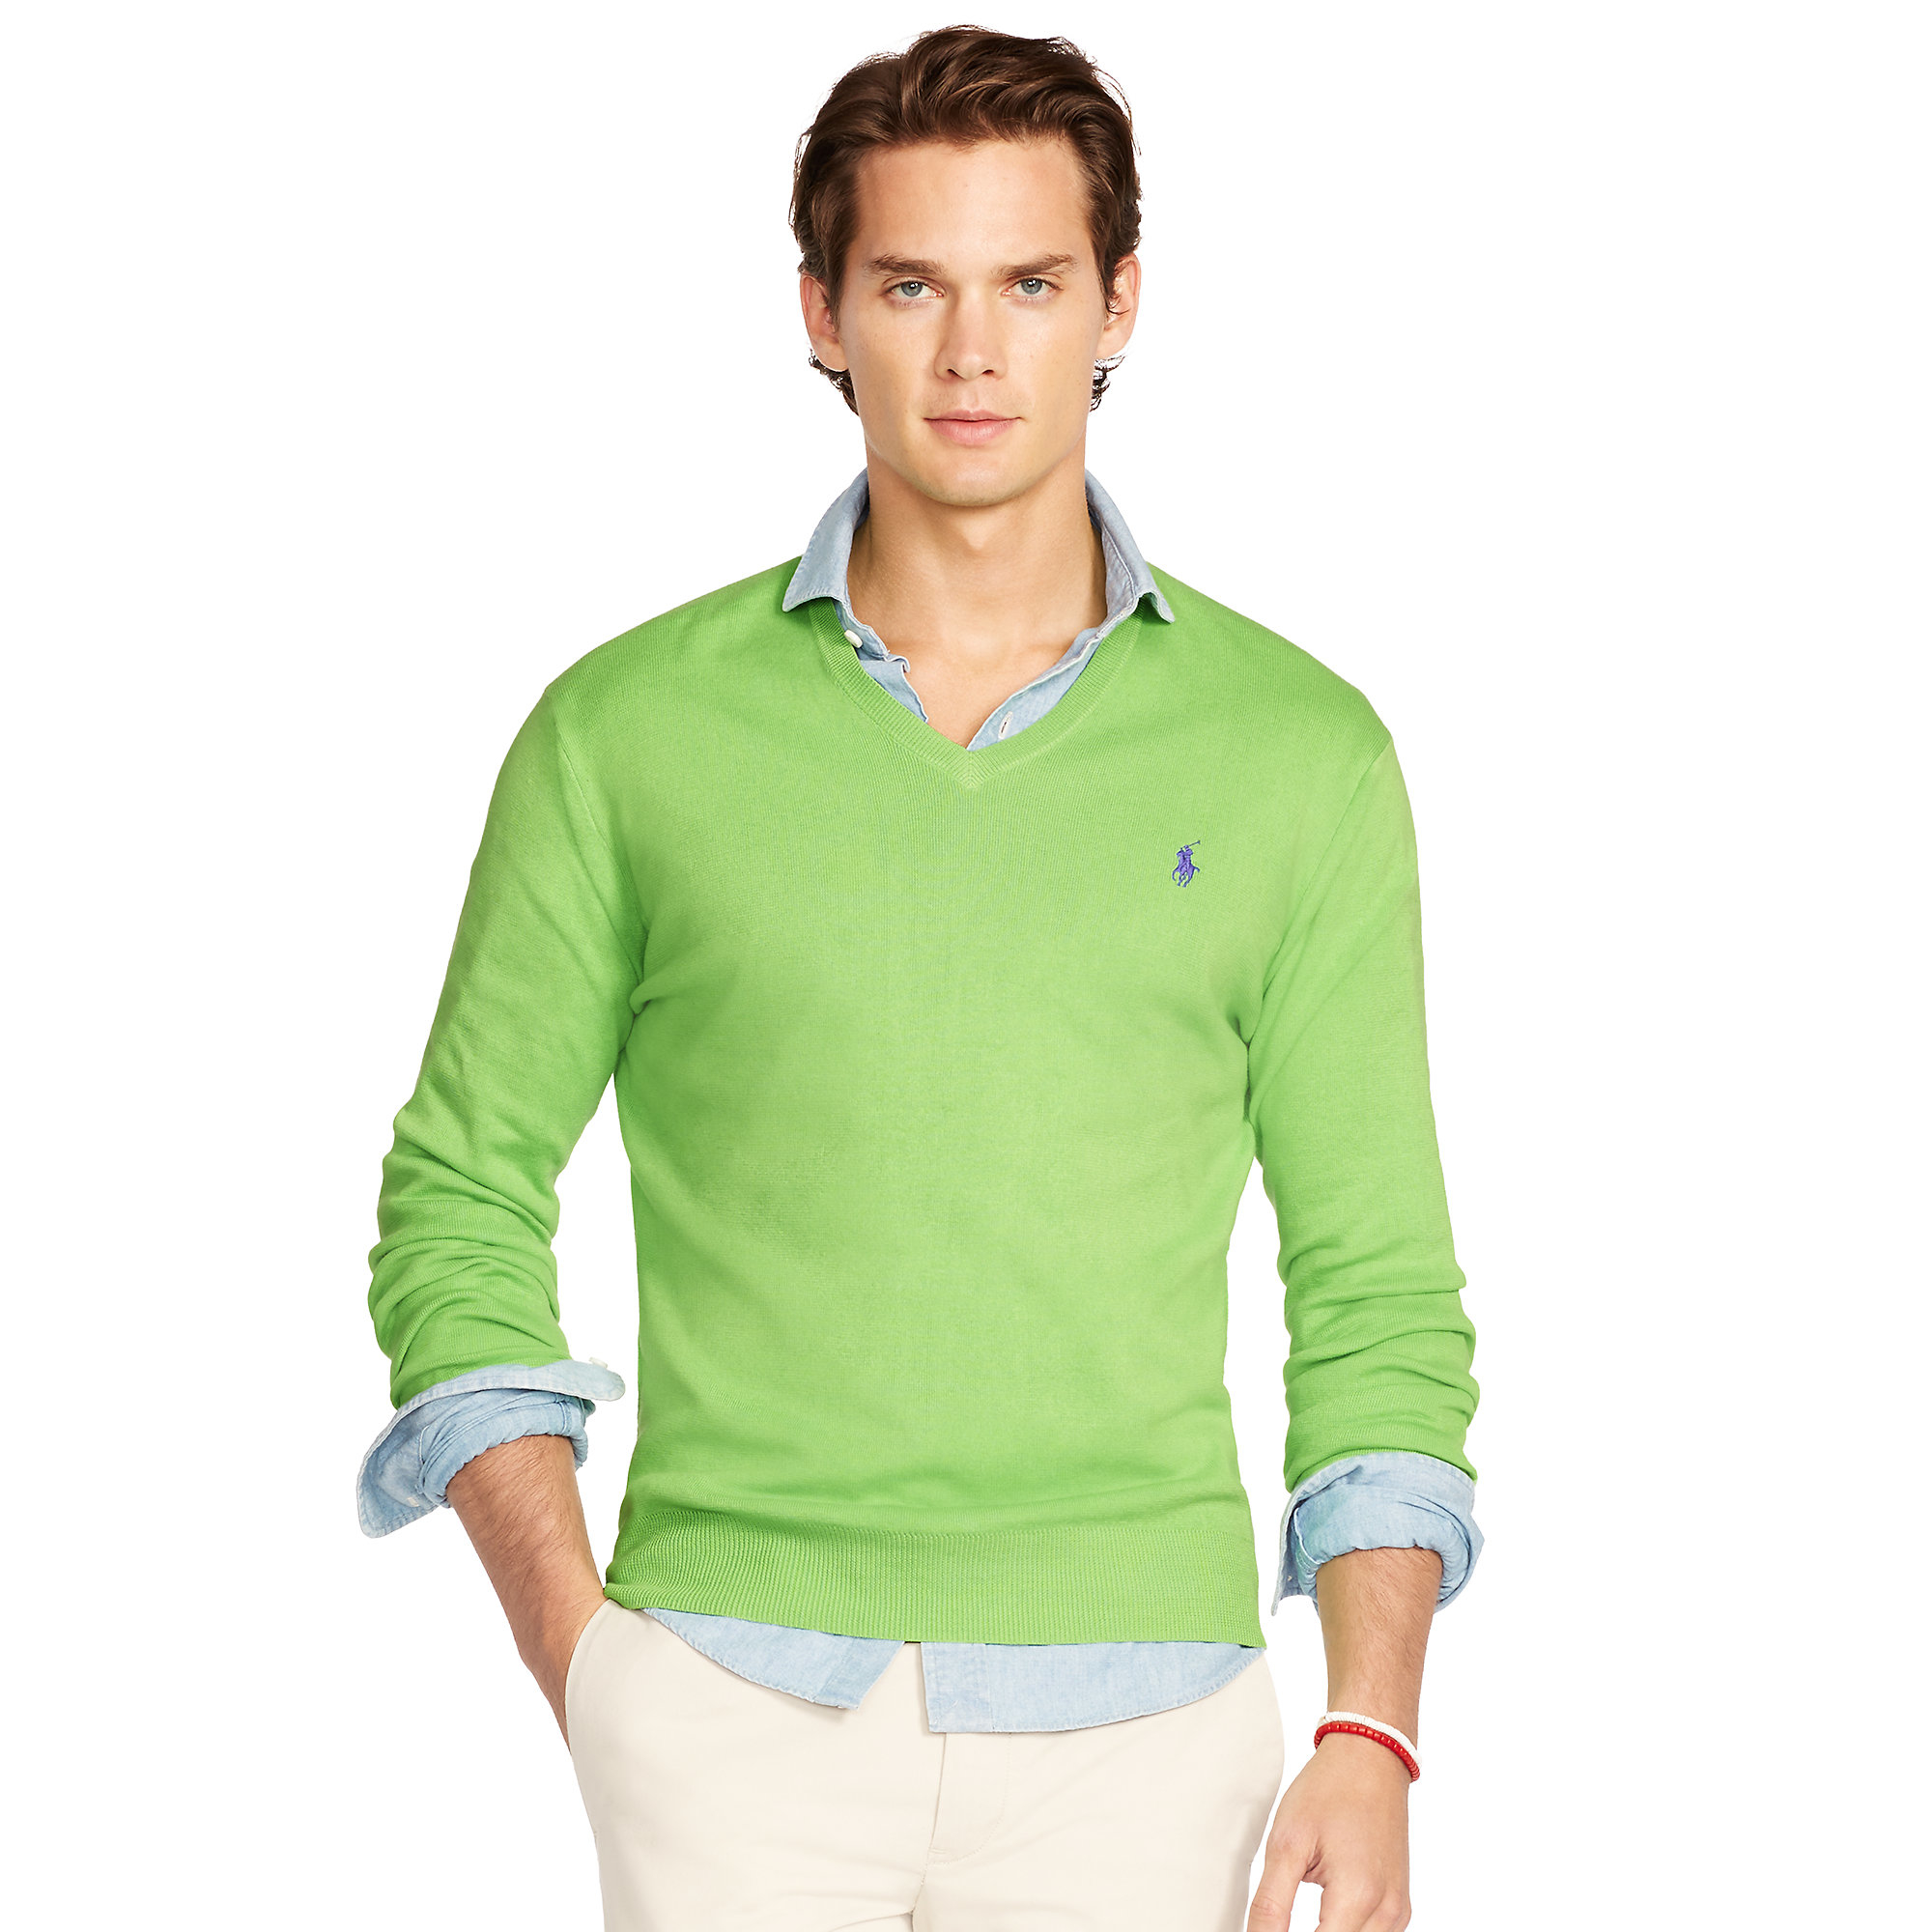 962a283fc4652 Lyst - Polo Ralph Lauren Pima Cotton V-neck Sweater in Green for Men